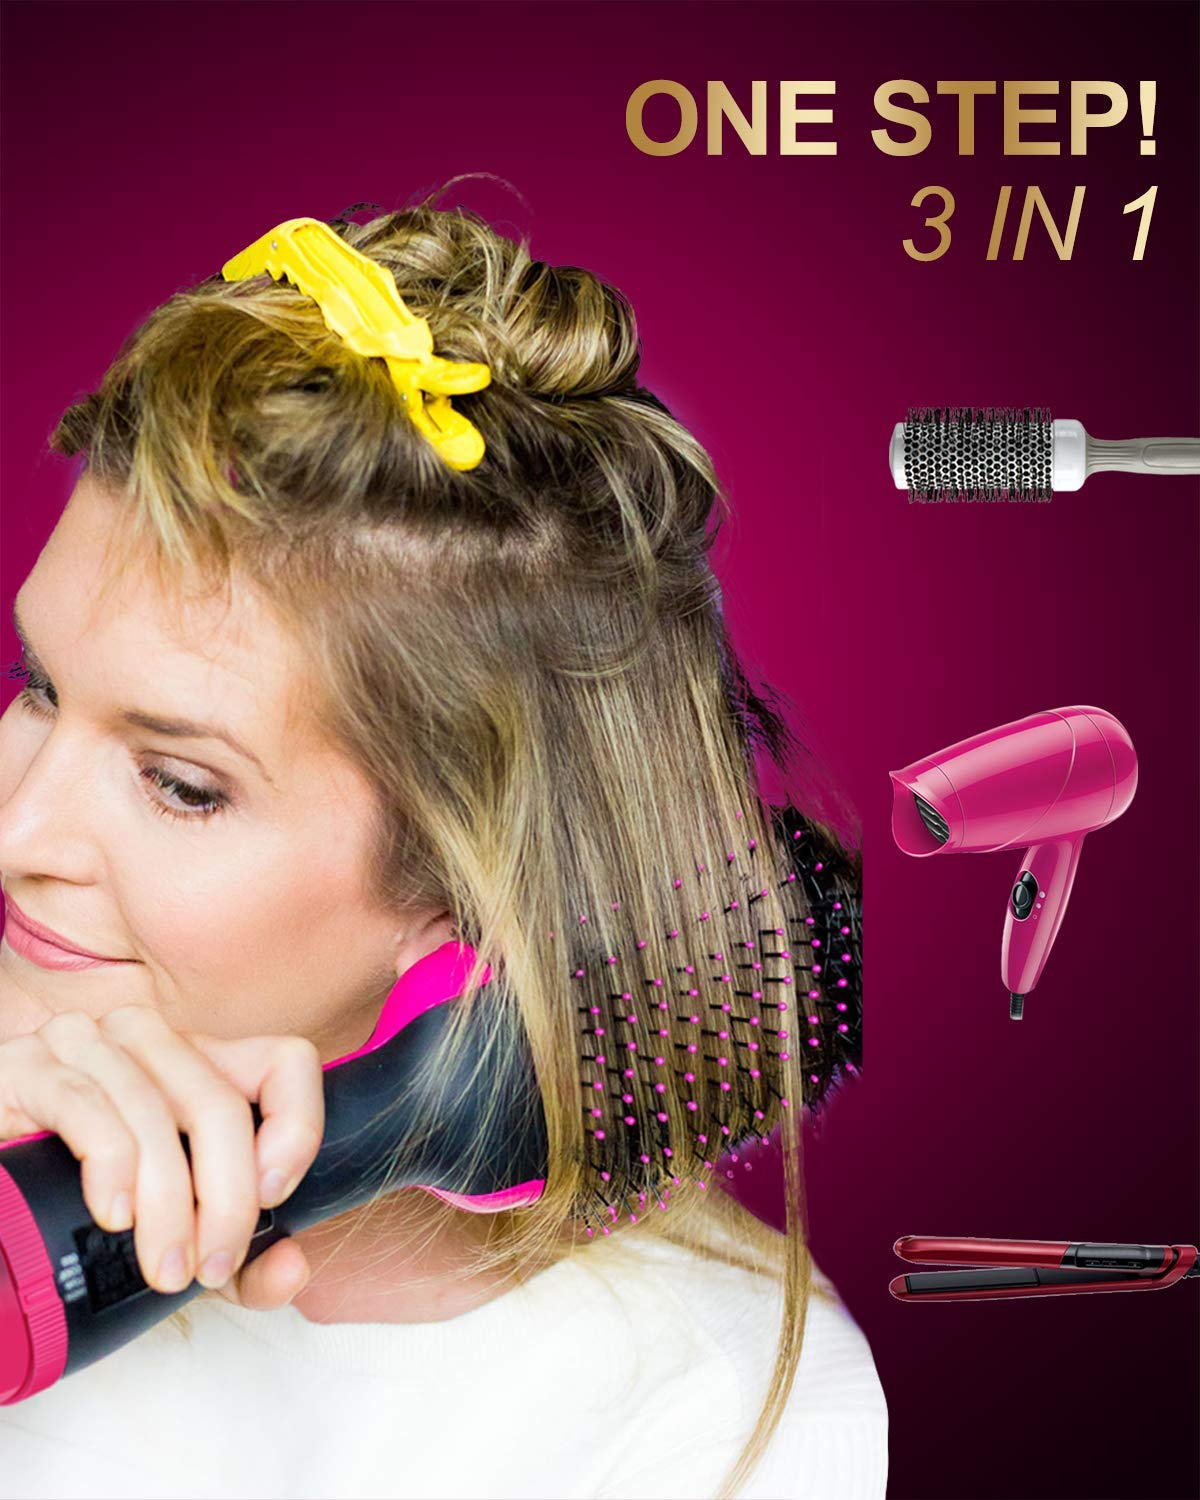 One Step Hair Dryer and Volumizer – iMethod 3-in-1 Ionic Ceramic Hot Air Brush Styler for Any Hair Types, Get Salon Blowouts at Home in Half the Time